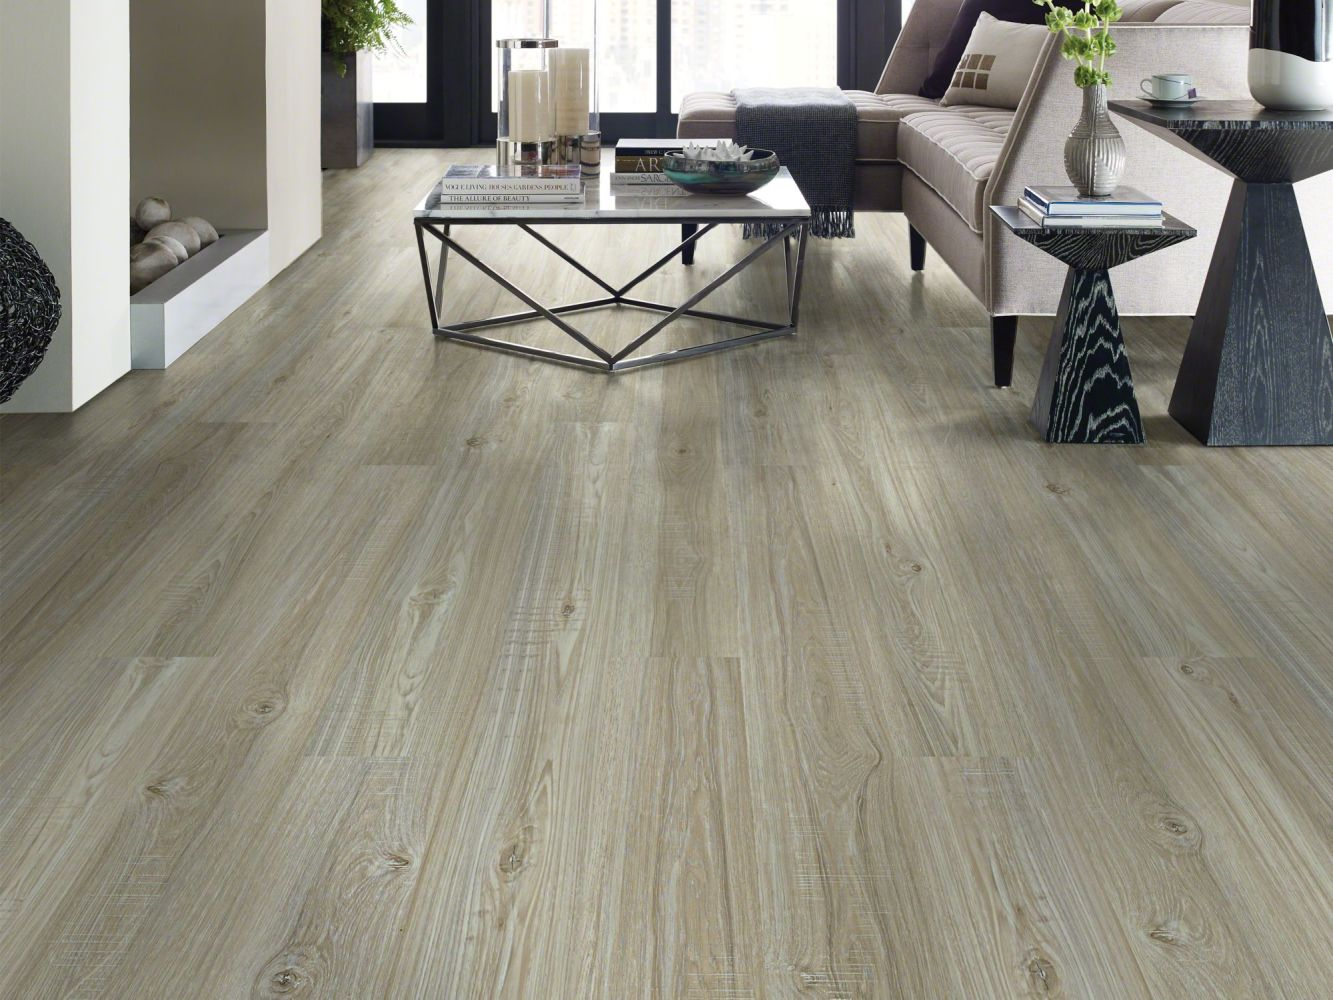 Shaw Floors Vinyl Residential Impact Washed Oak 00509_0925V